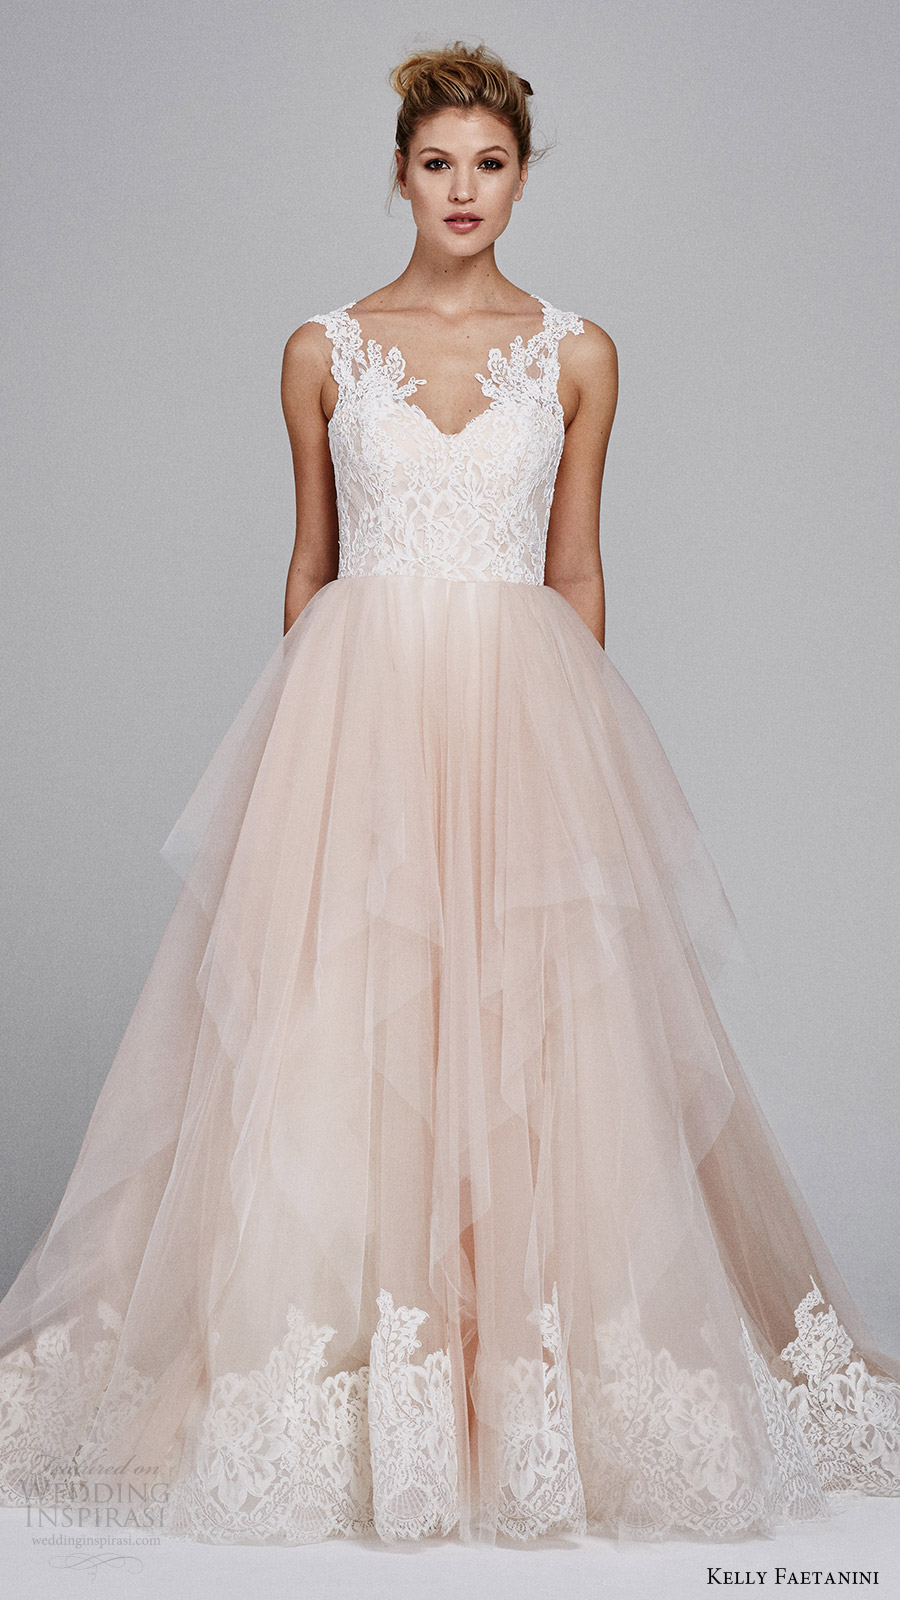 kelly faetanini fall 2017 sleeveless sweetheart lace bodice aline wedding dress (azalea) mv blush skirt lace hem